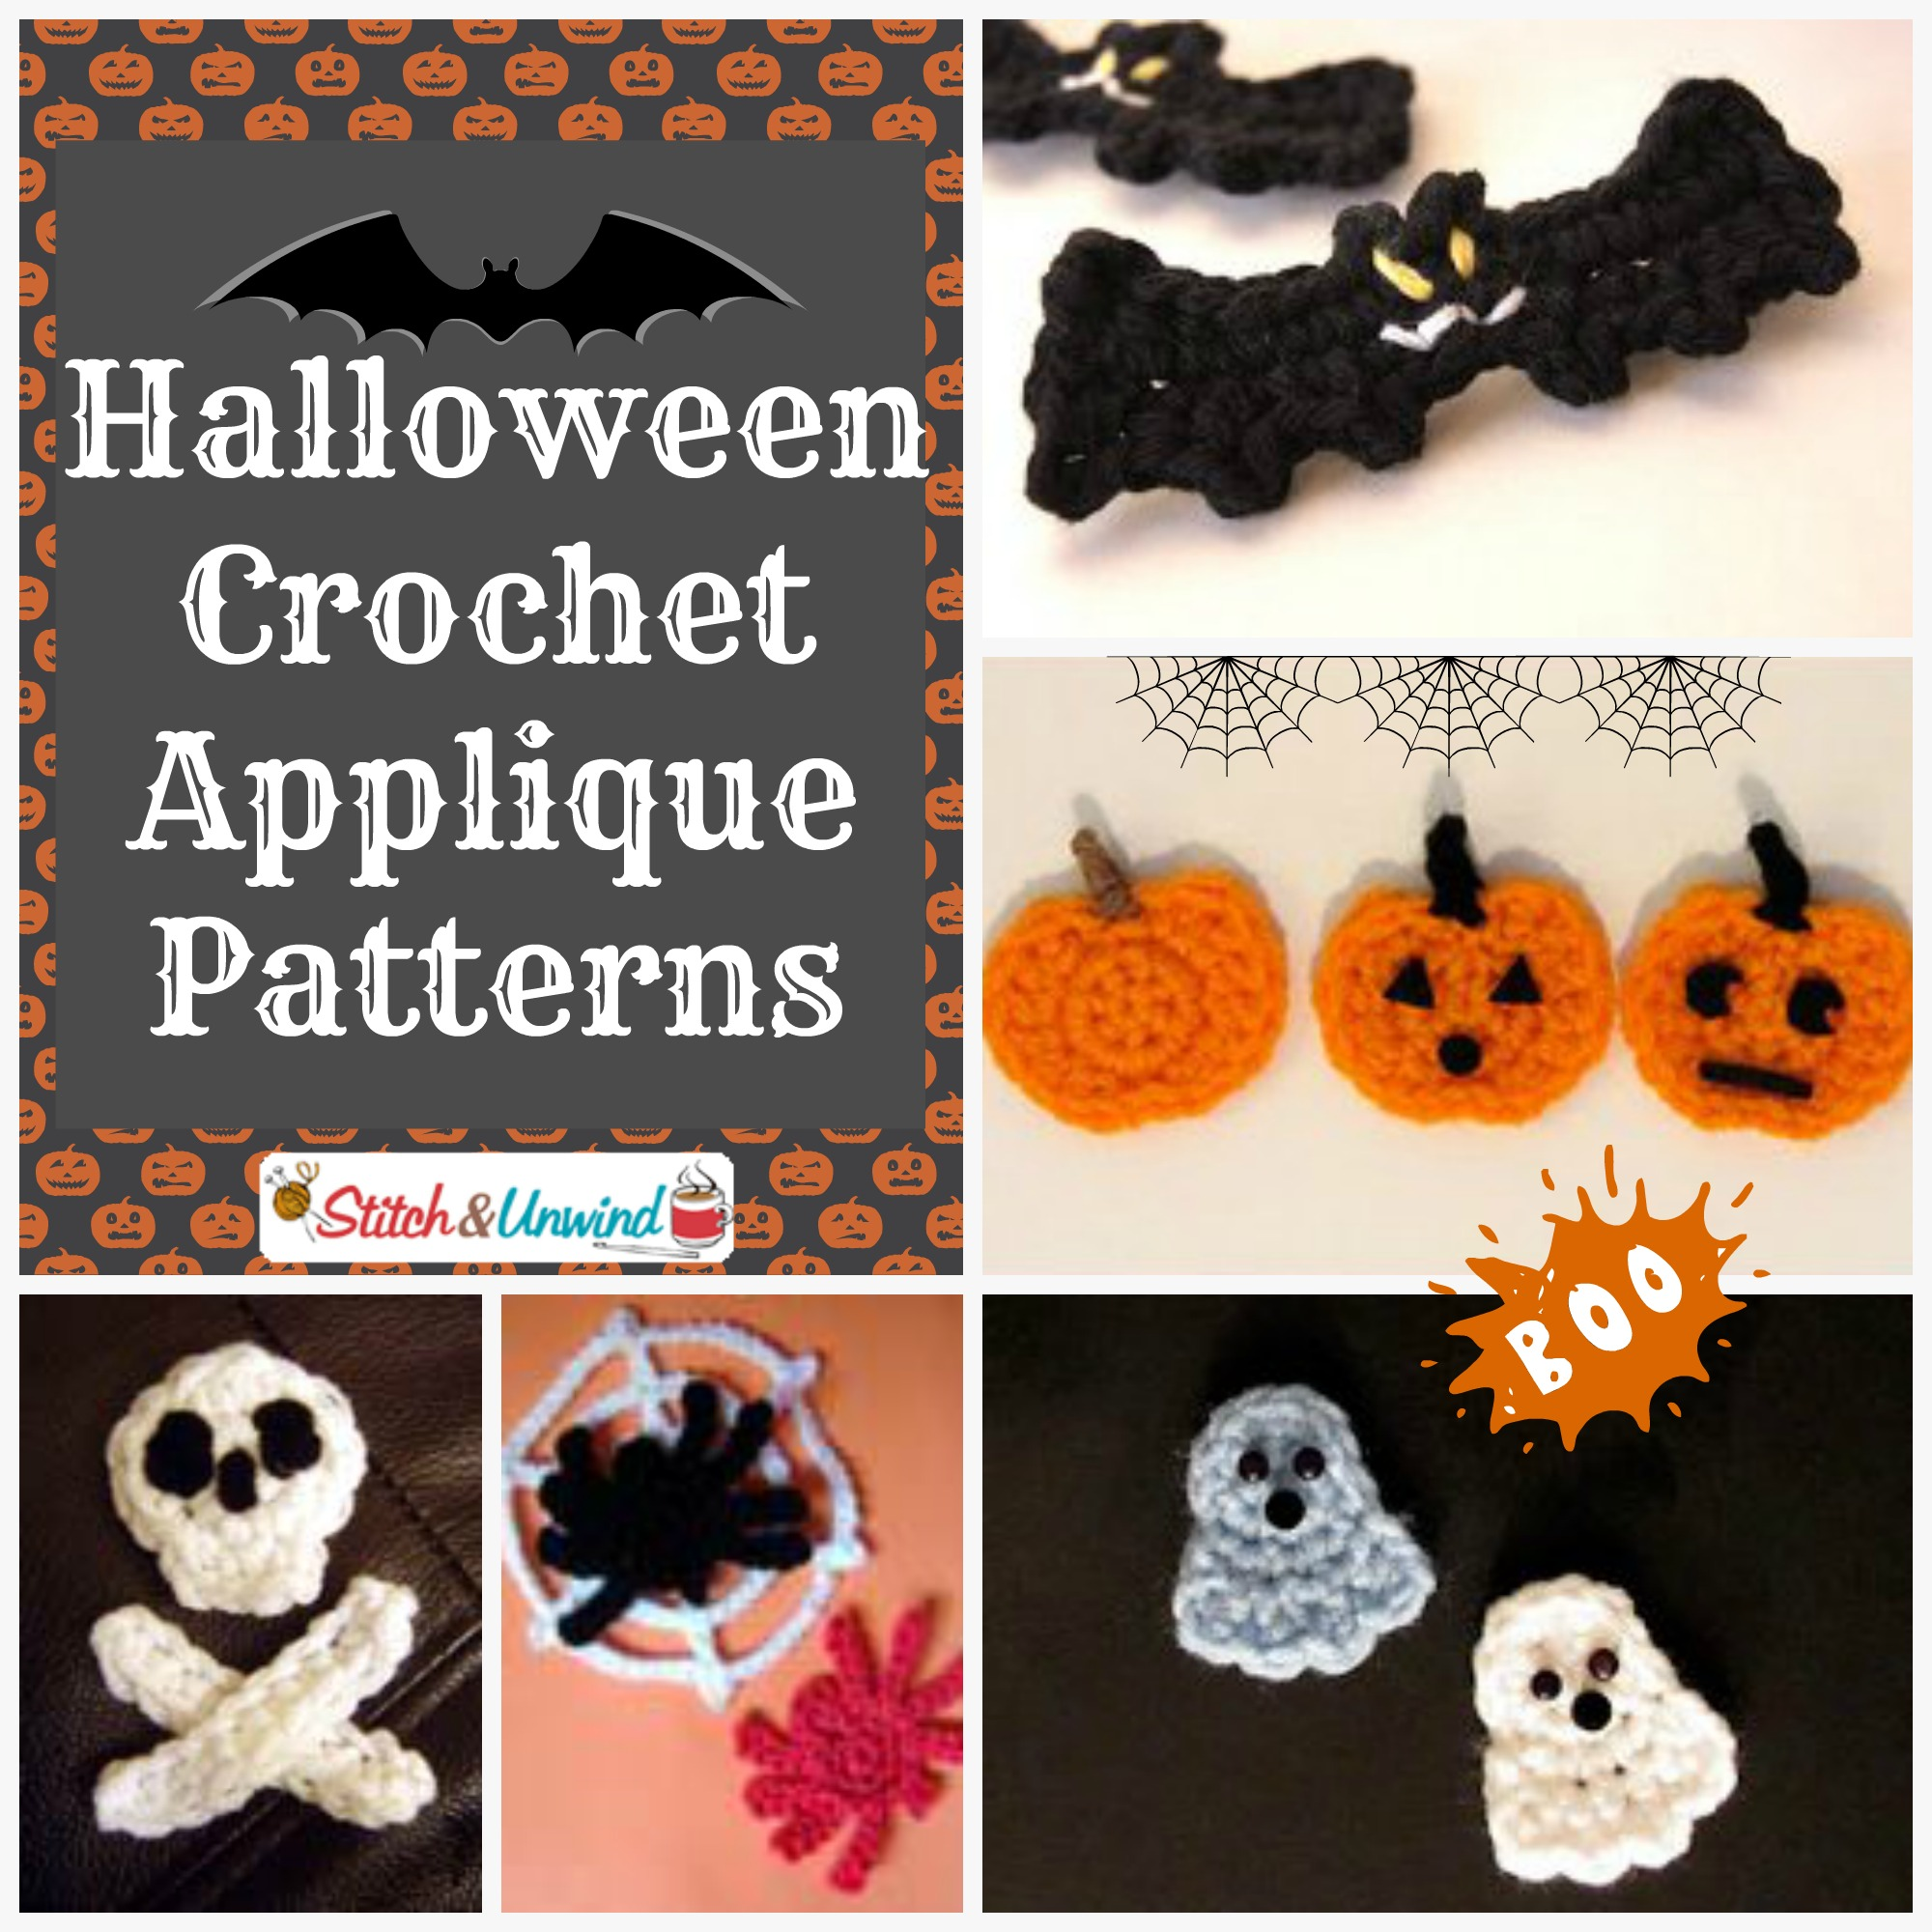 Free Crochet Patterns Halloween : Add Flair To Your Afghans: Free Crochet Applique Patterns